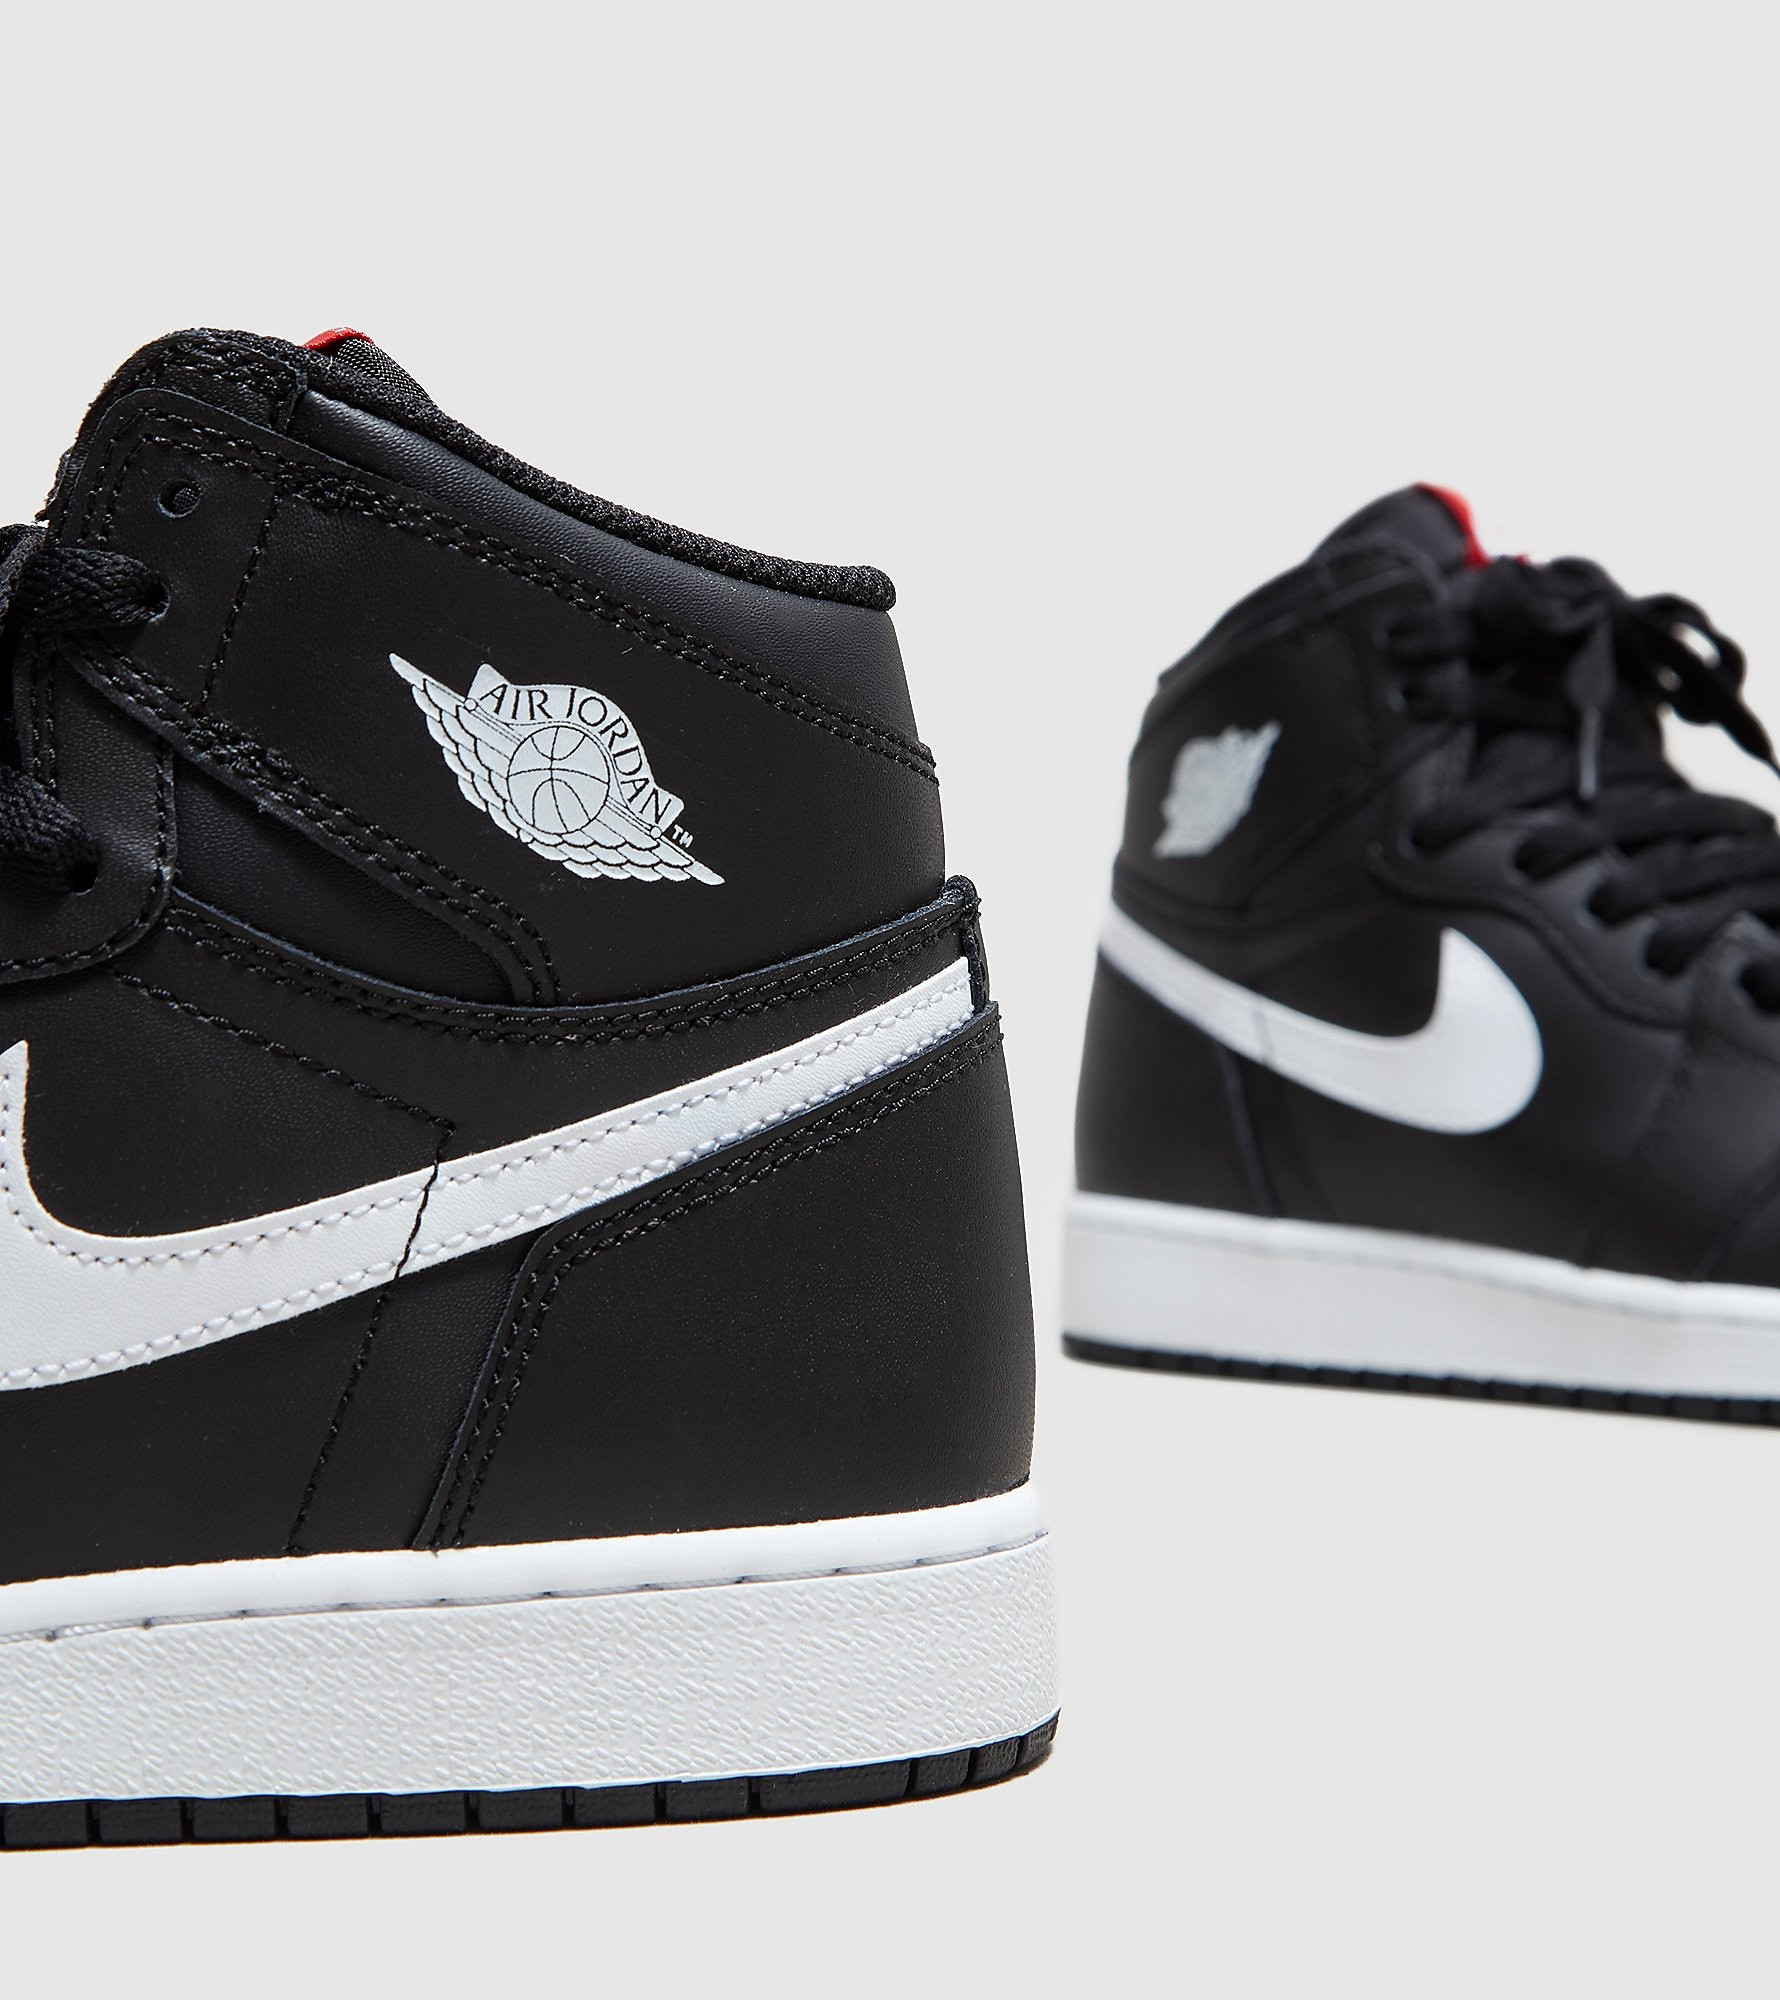 Jordan Retro 1 High OG BG 'Yin-Yang'